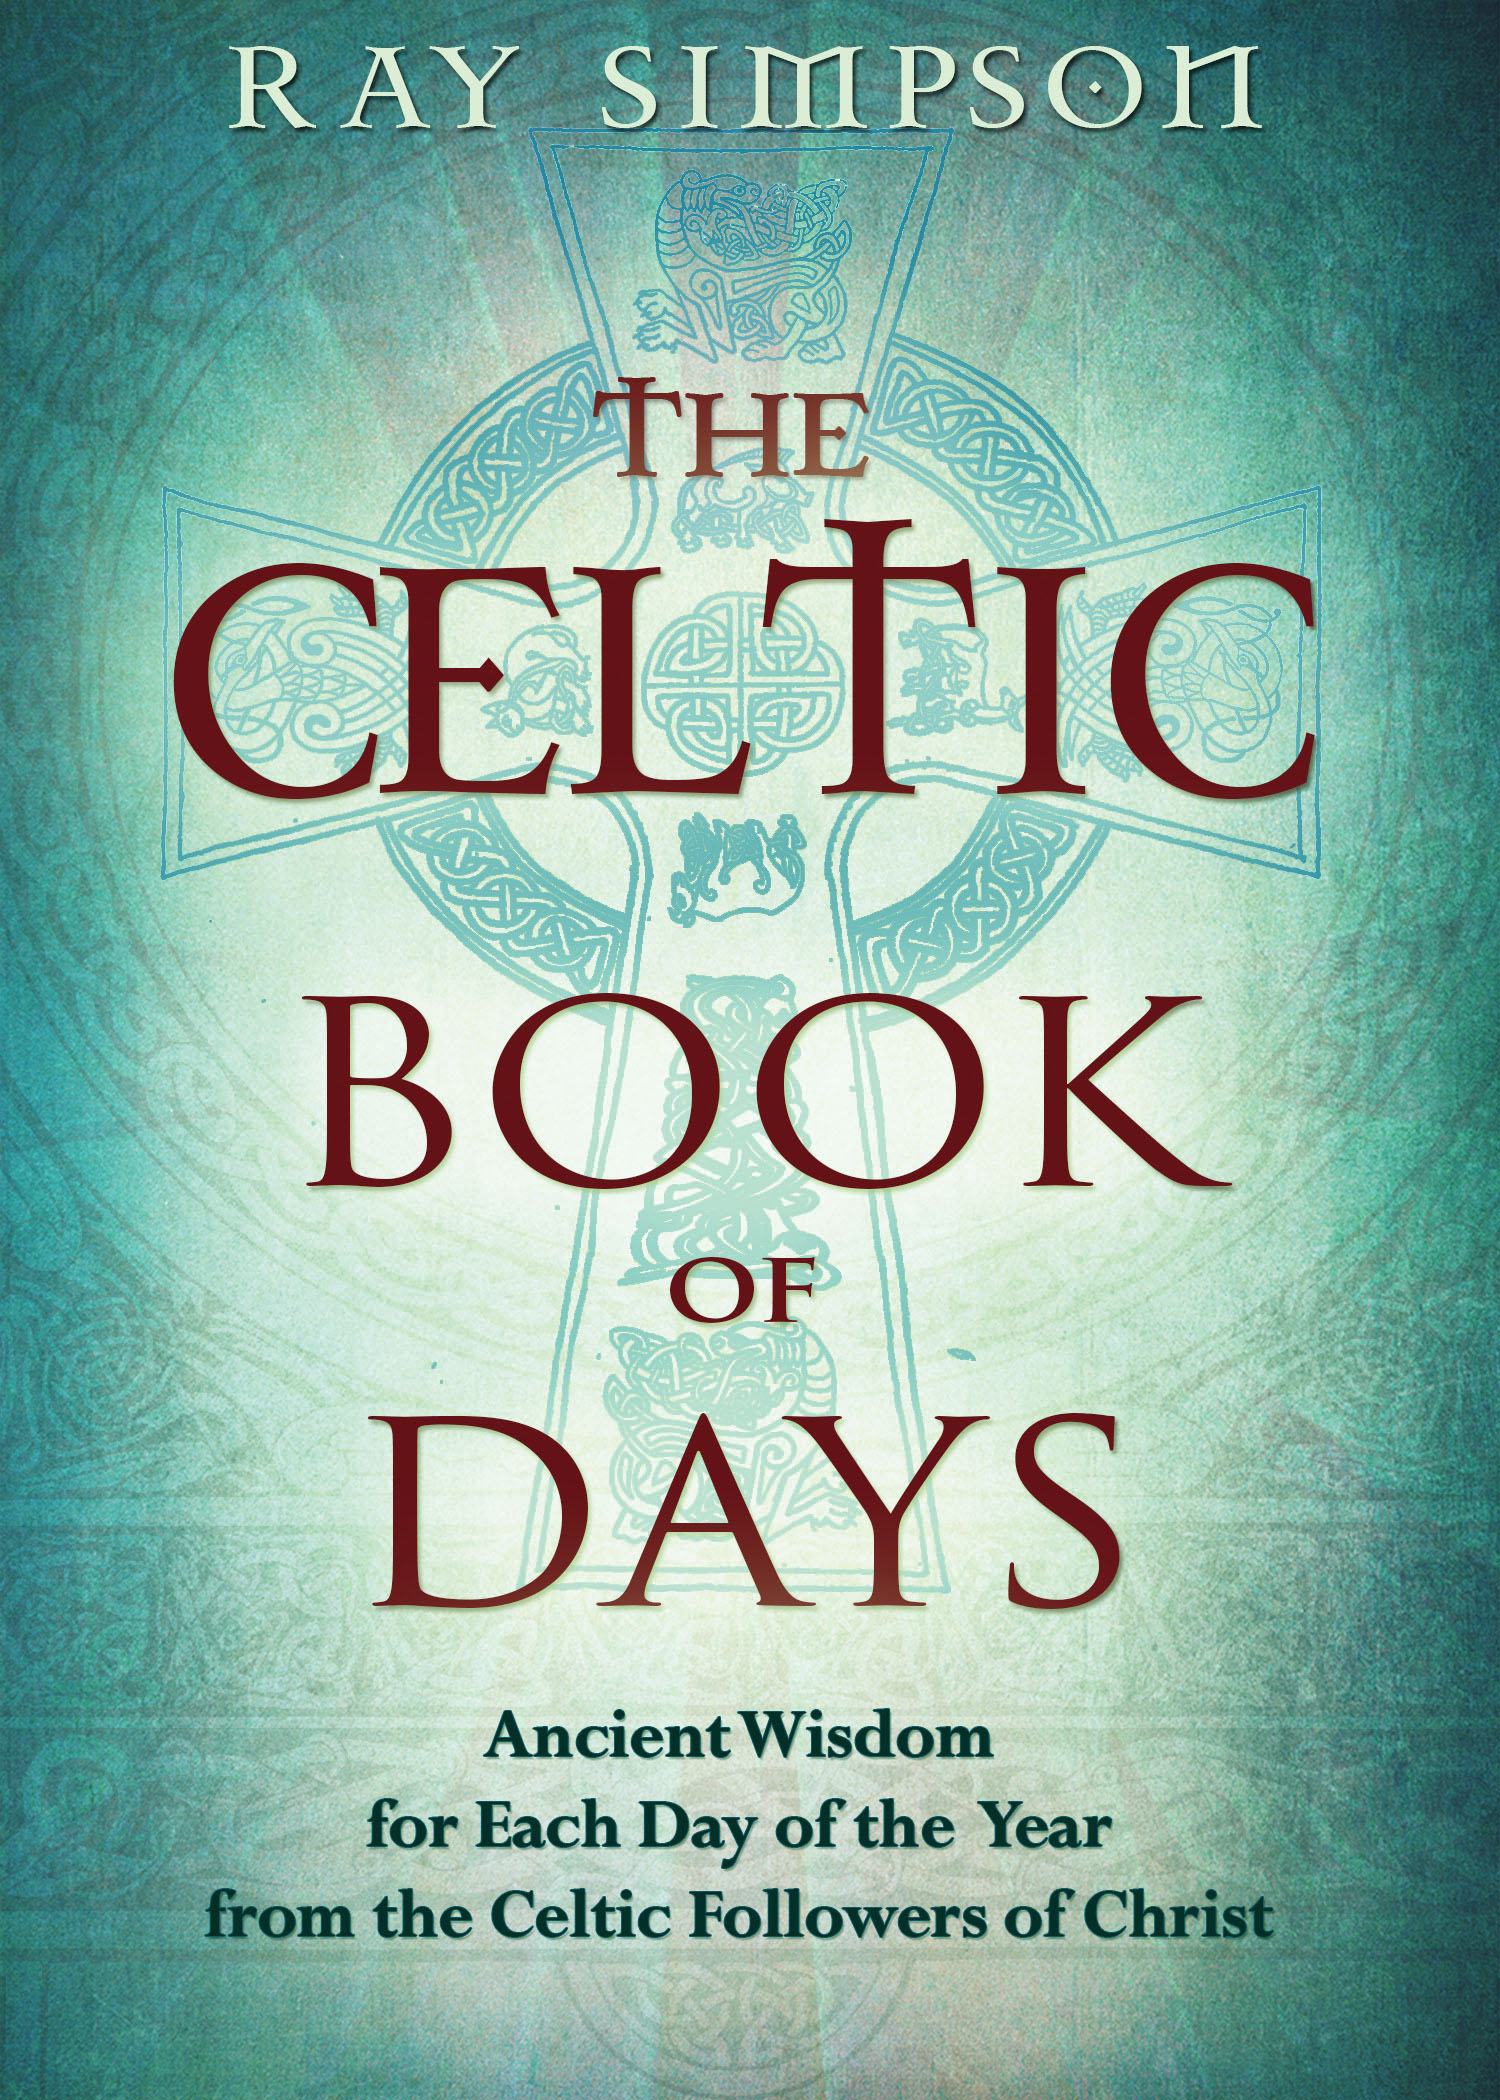 Ray Simpson is the author of the Celtic Book of Days: Ancient Wisdom for Each Day of the Year from the Celtic Followers of Christ, available through Amazon.com.